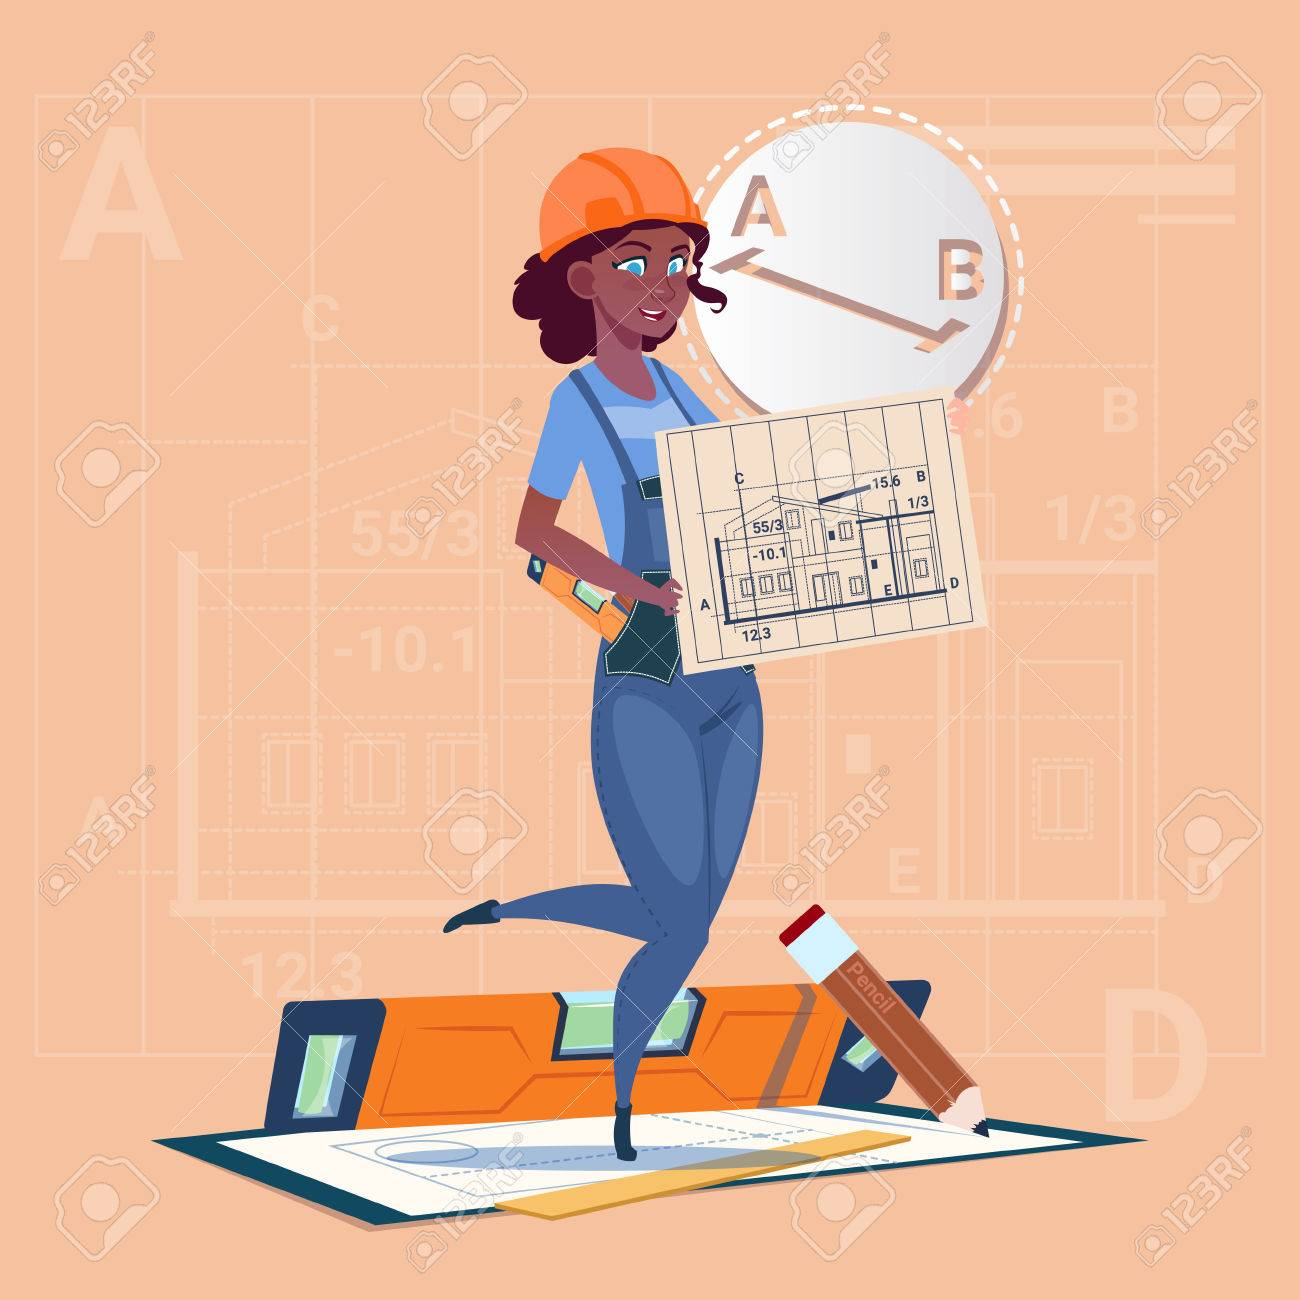 Cartoon builder woman hold plan of building blueprint wearing cartoon builder woman hold plan of building blueprint wearing uniform and helmet mix race construction worker malvernweather Image collections